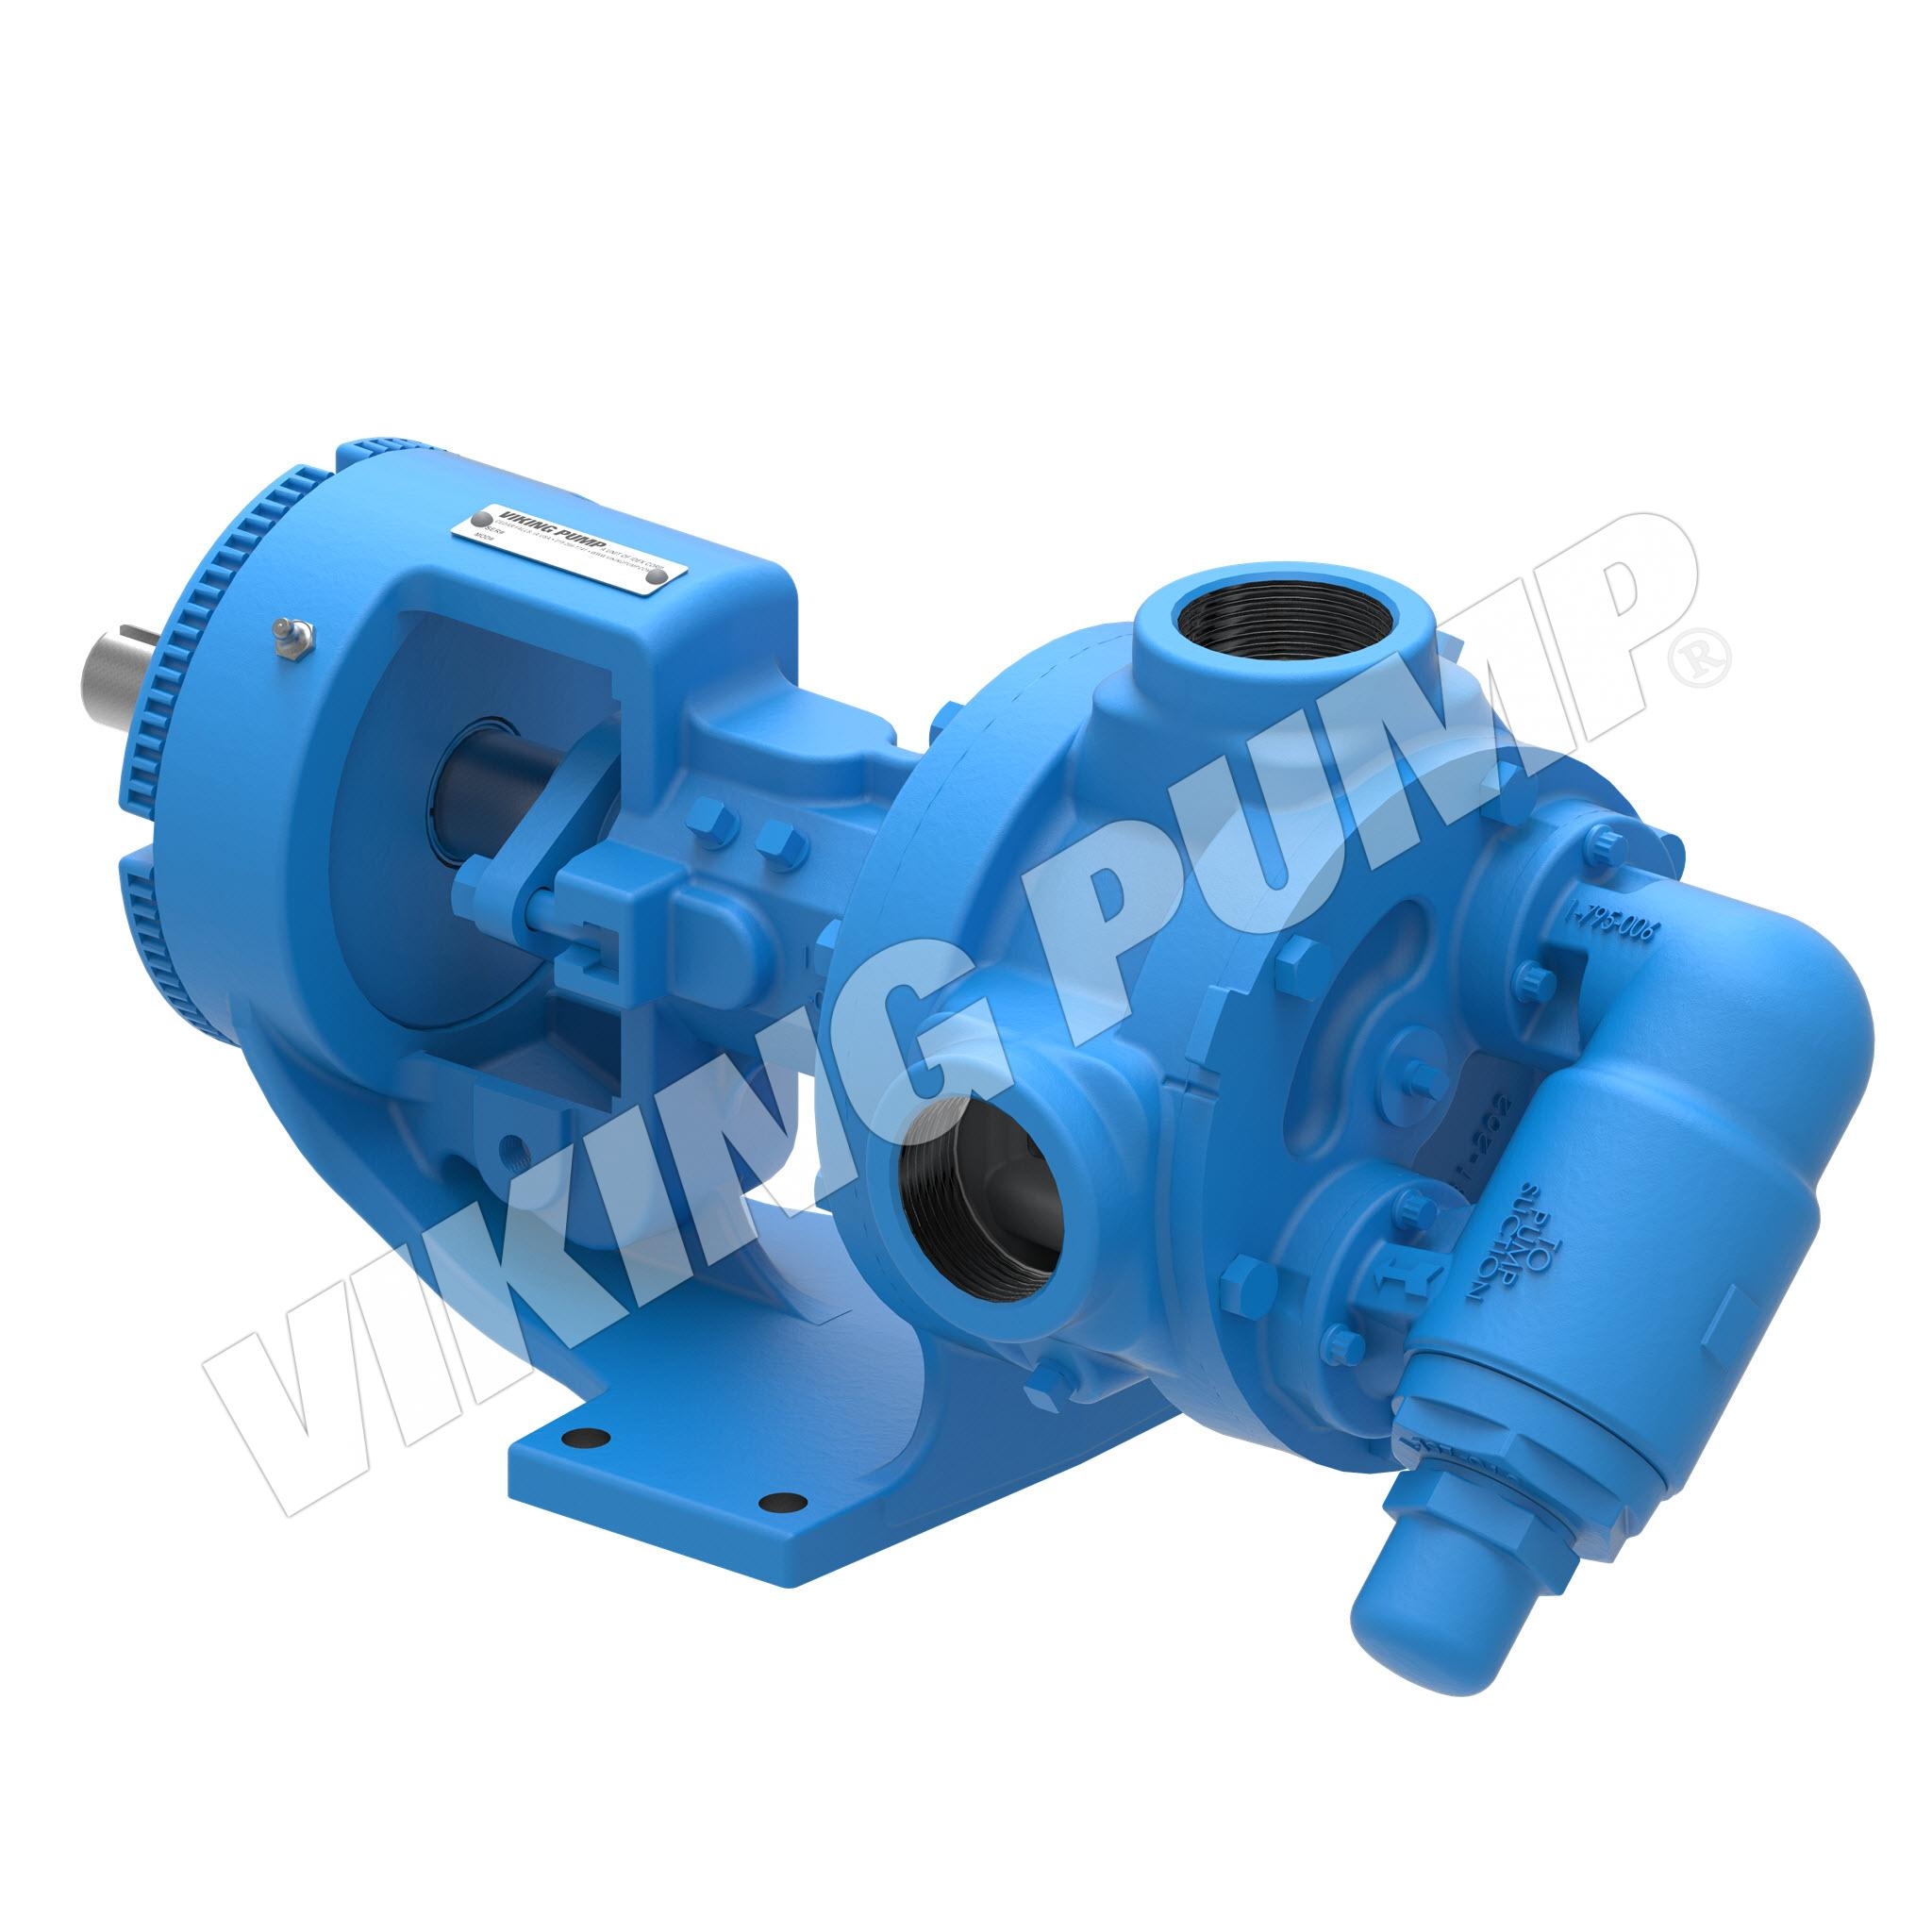 Model K4124AE, Foot Mounted, Mechanical Seal, Relief Valve Pump